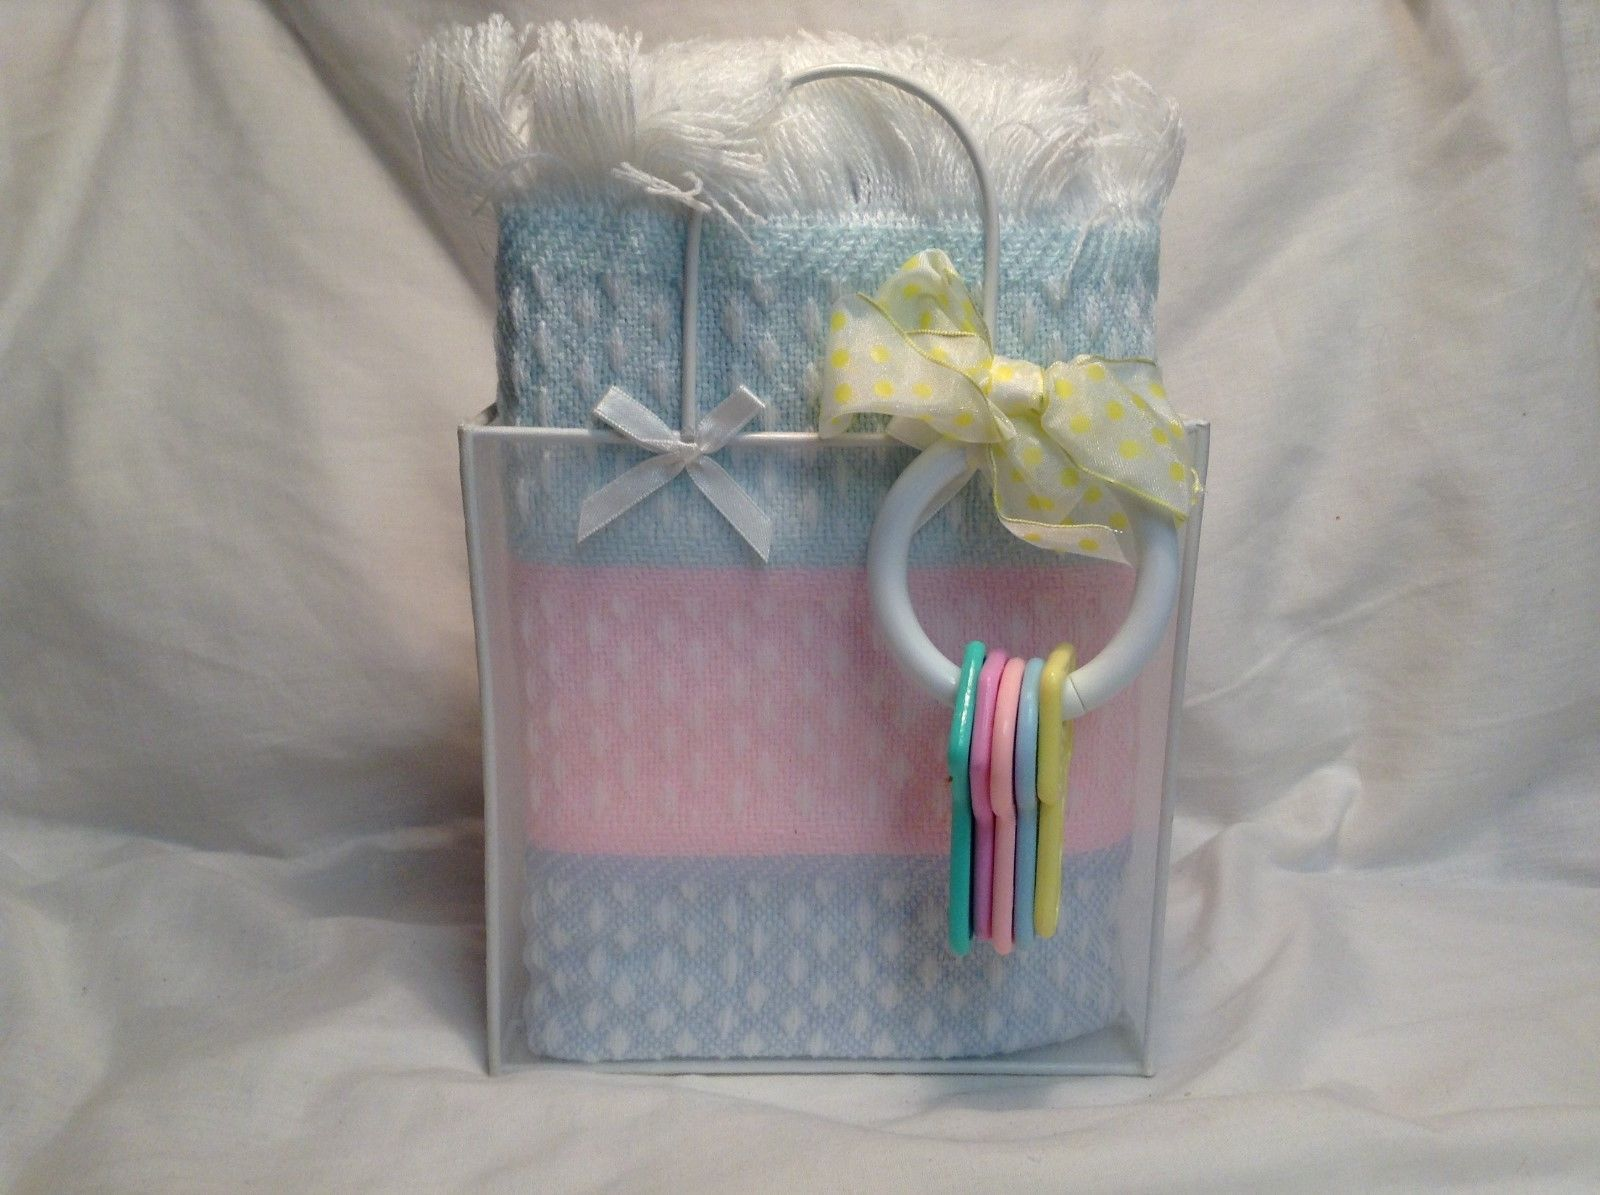 NEW Stephan Baby Blue/Pink Baby Blanket w Toy Keys